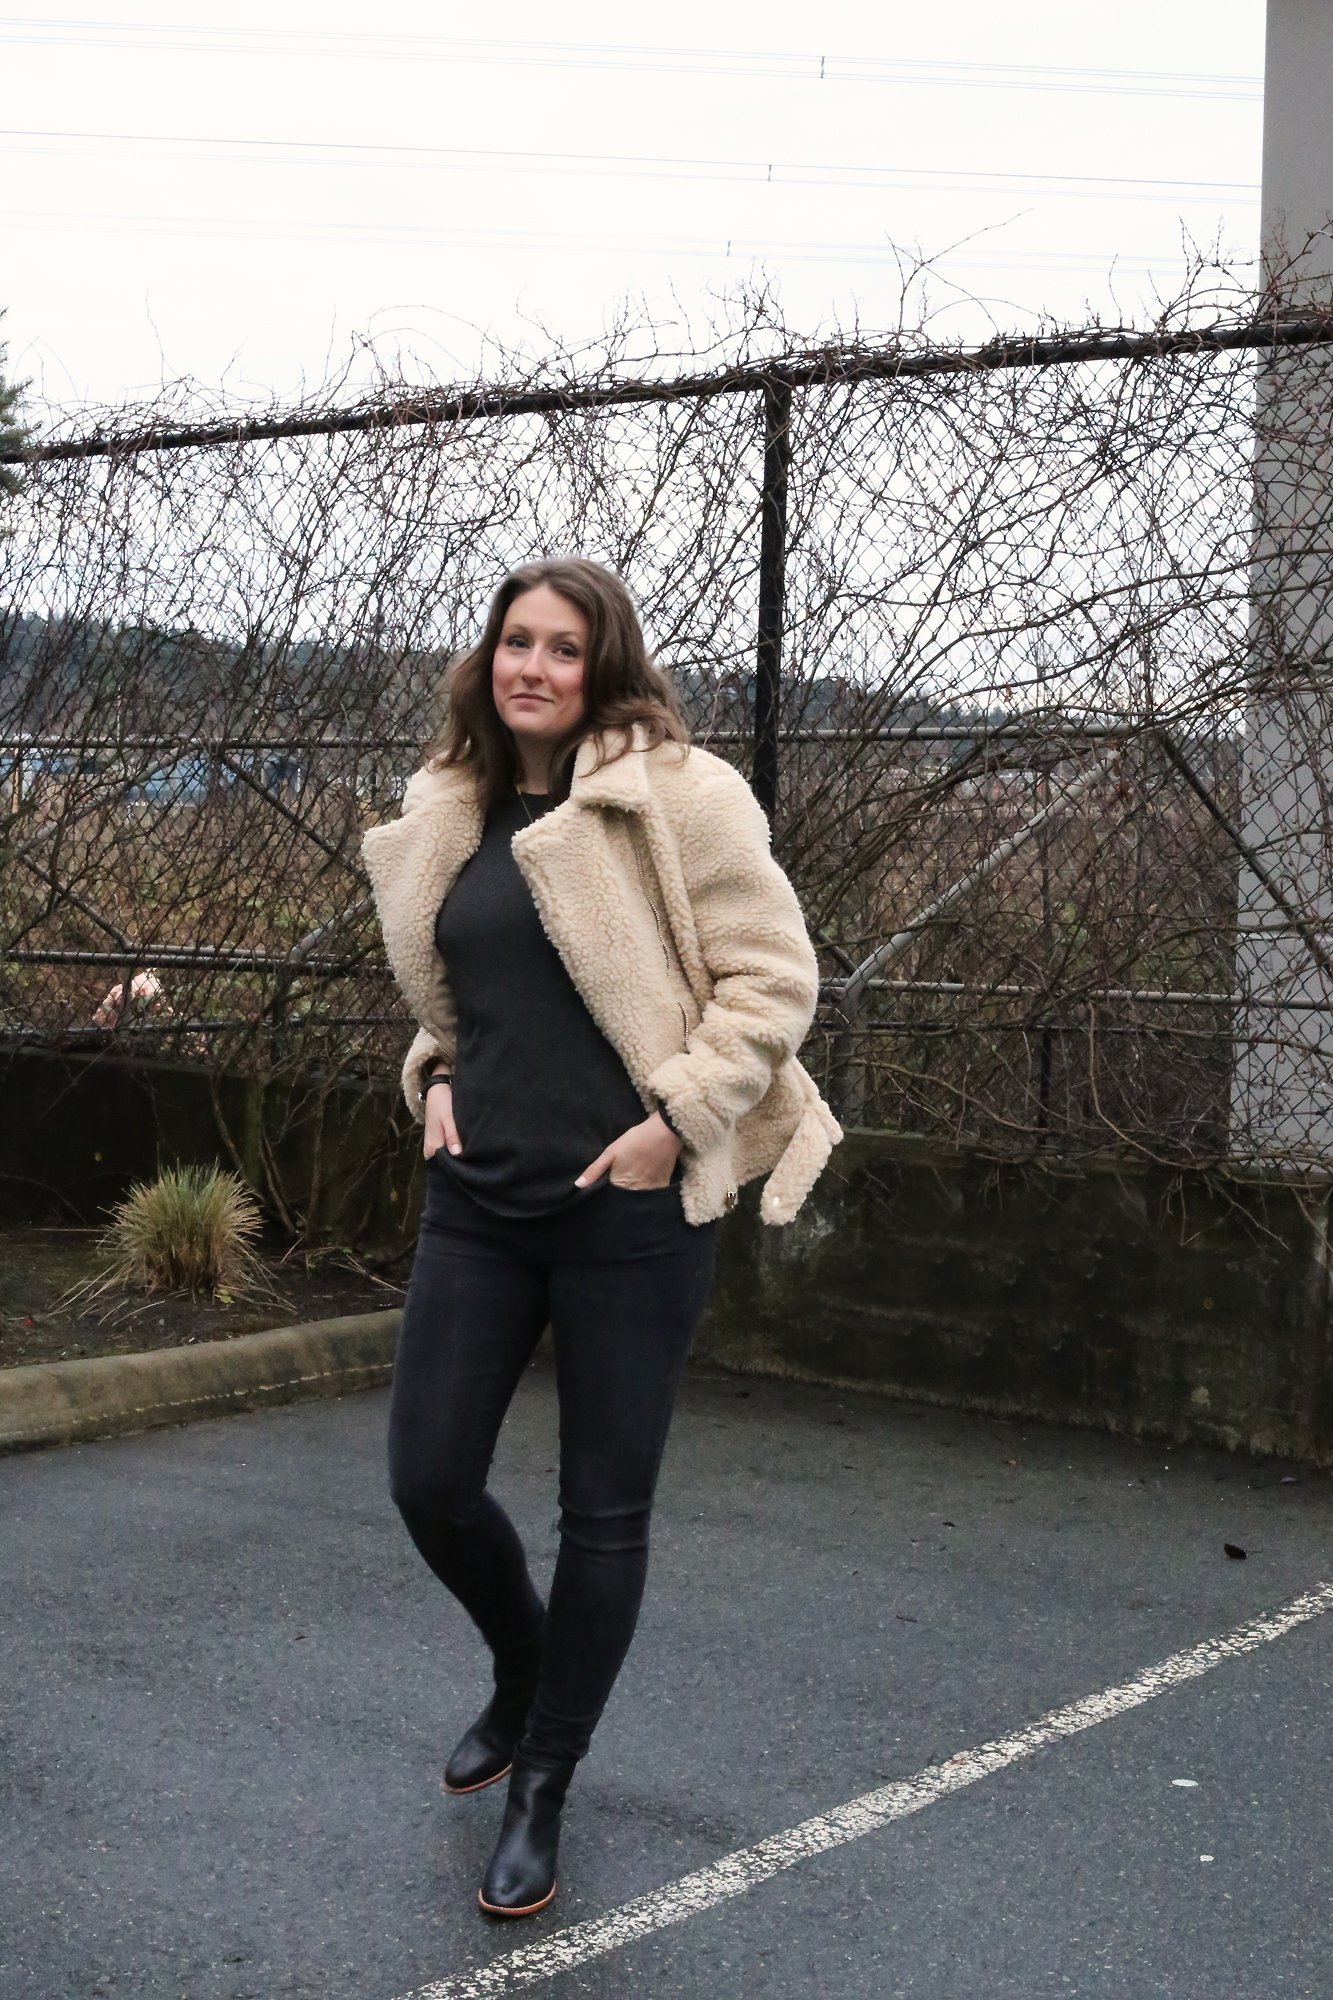 Shearling jacket dreams. I'm so into minimalist street style and luxury fashion for less.